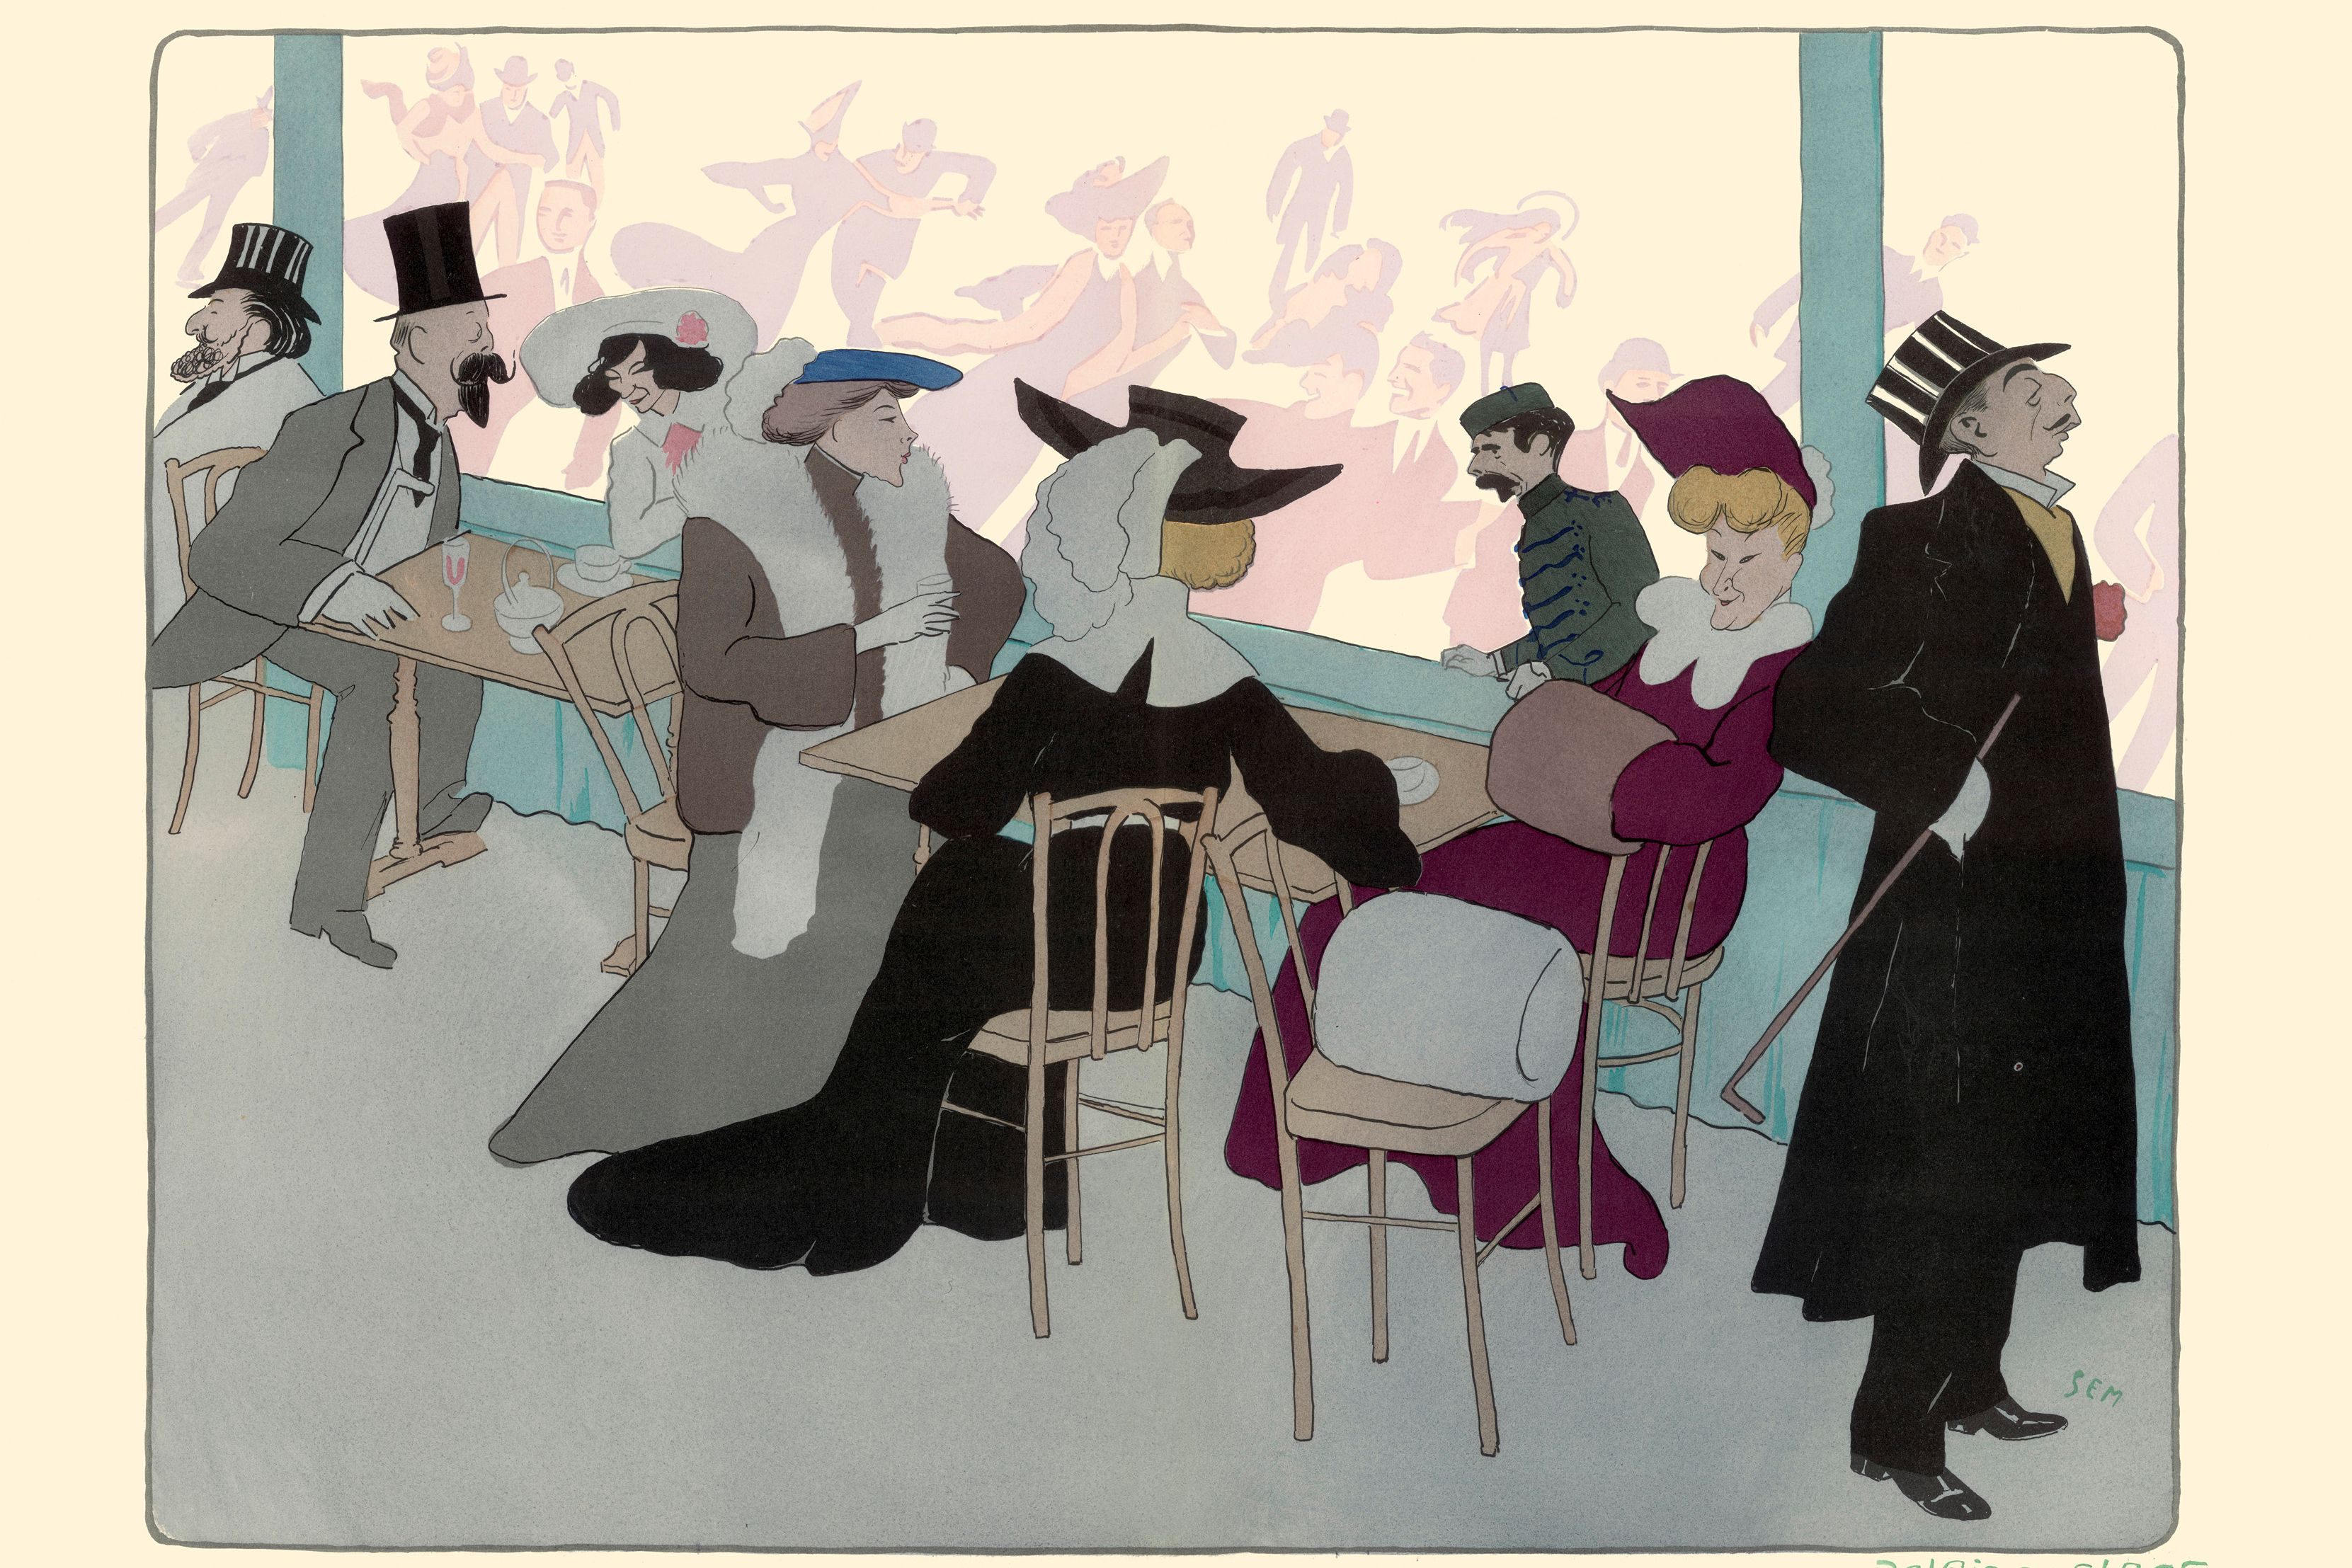 Lithograph by Sem: Le Palais De Glace: Colette; Willy and Other Persona. France, 1901